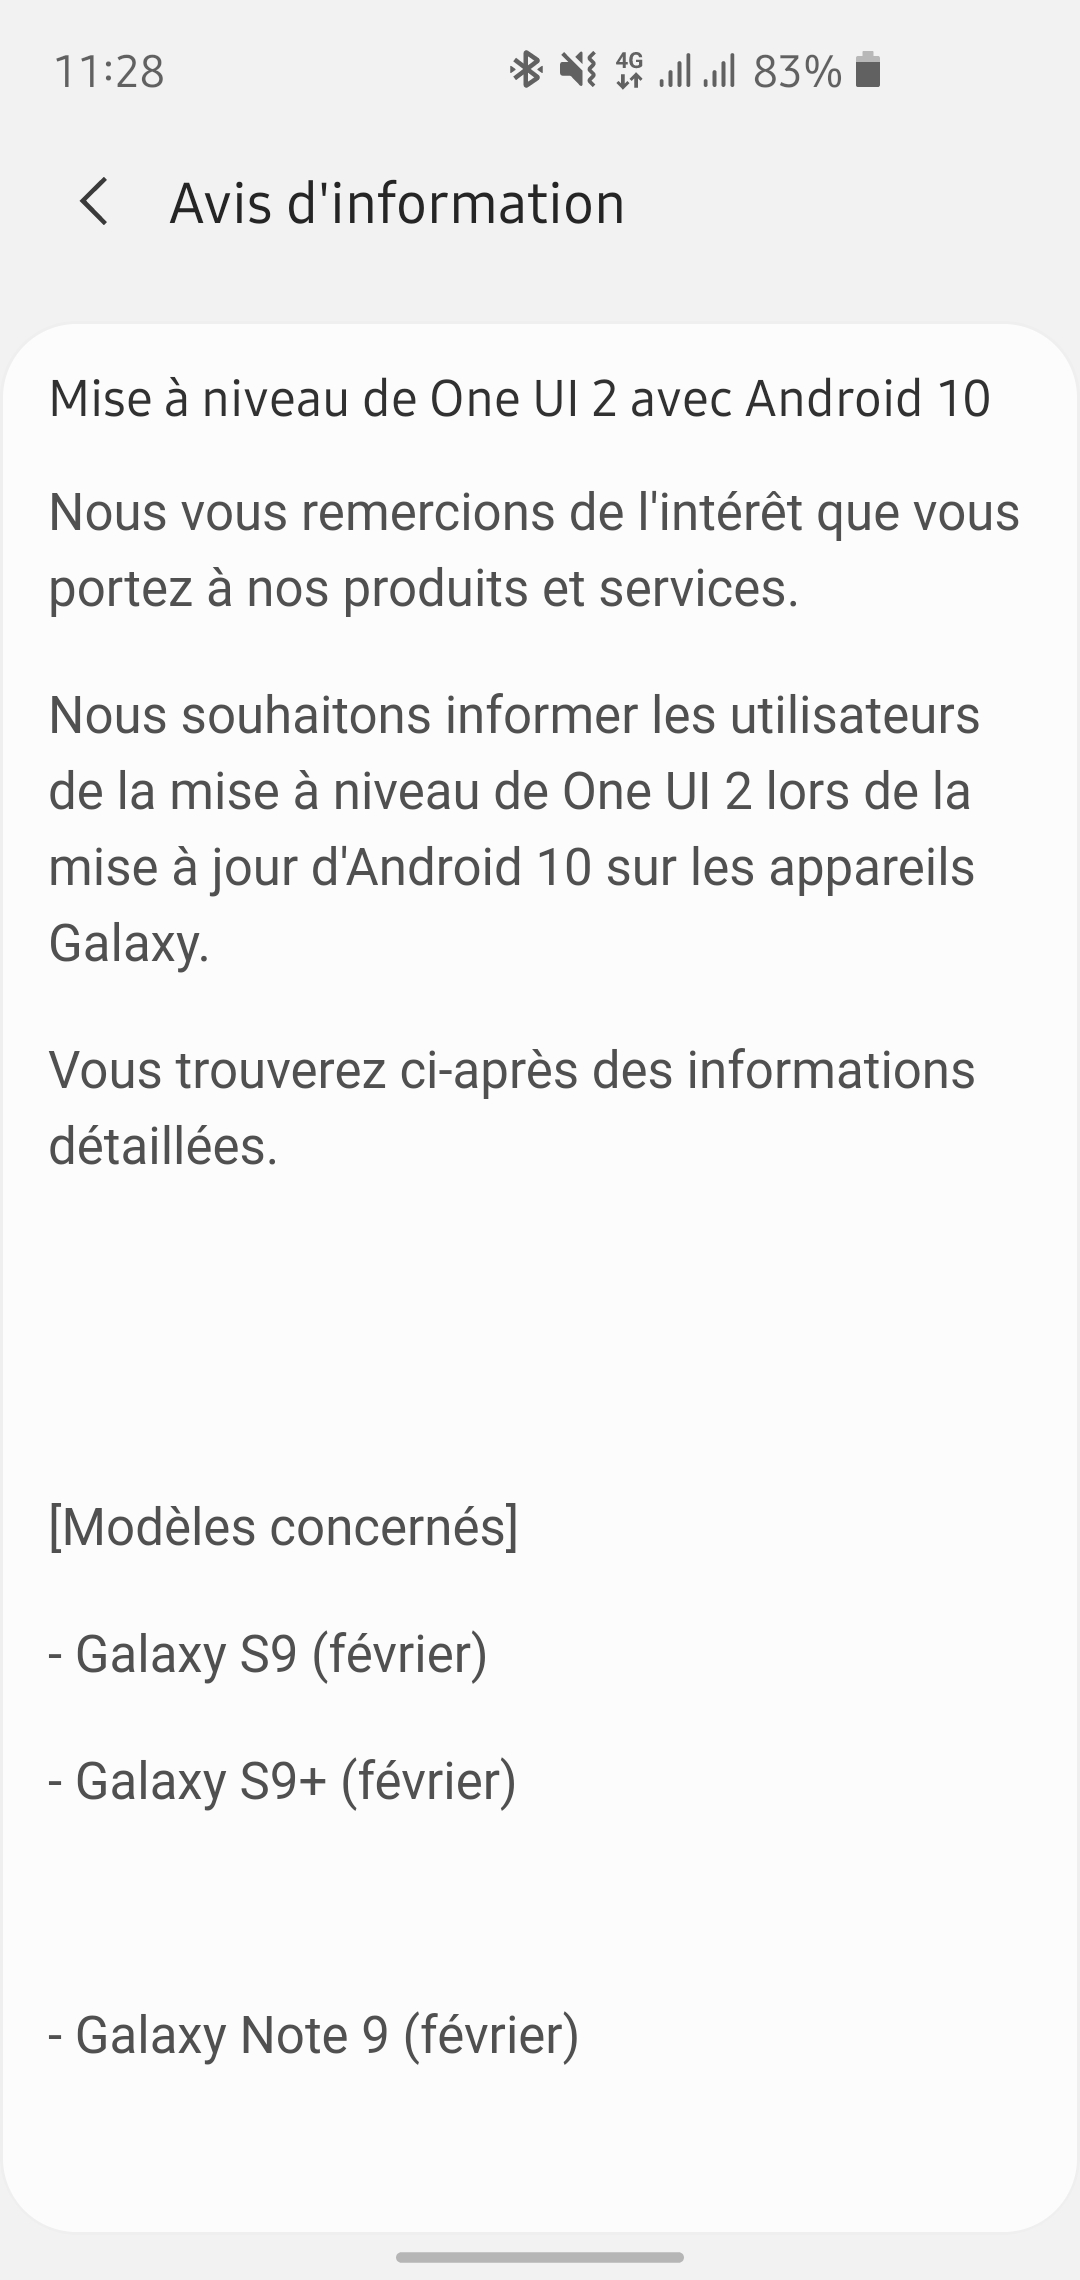 Samsung Members - Android 10